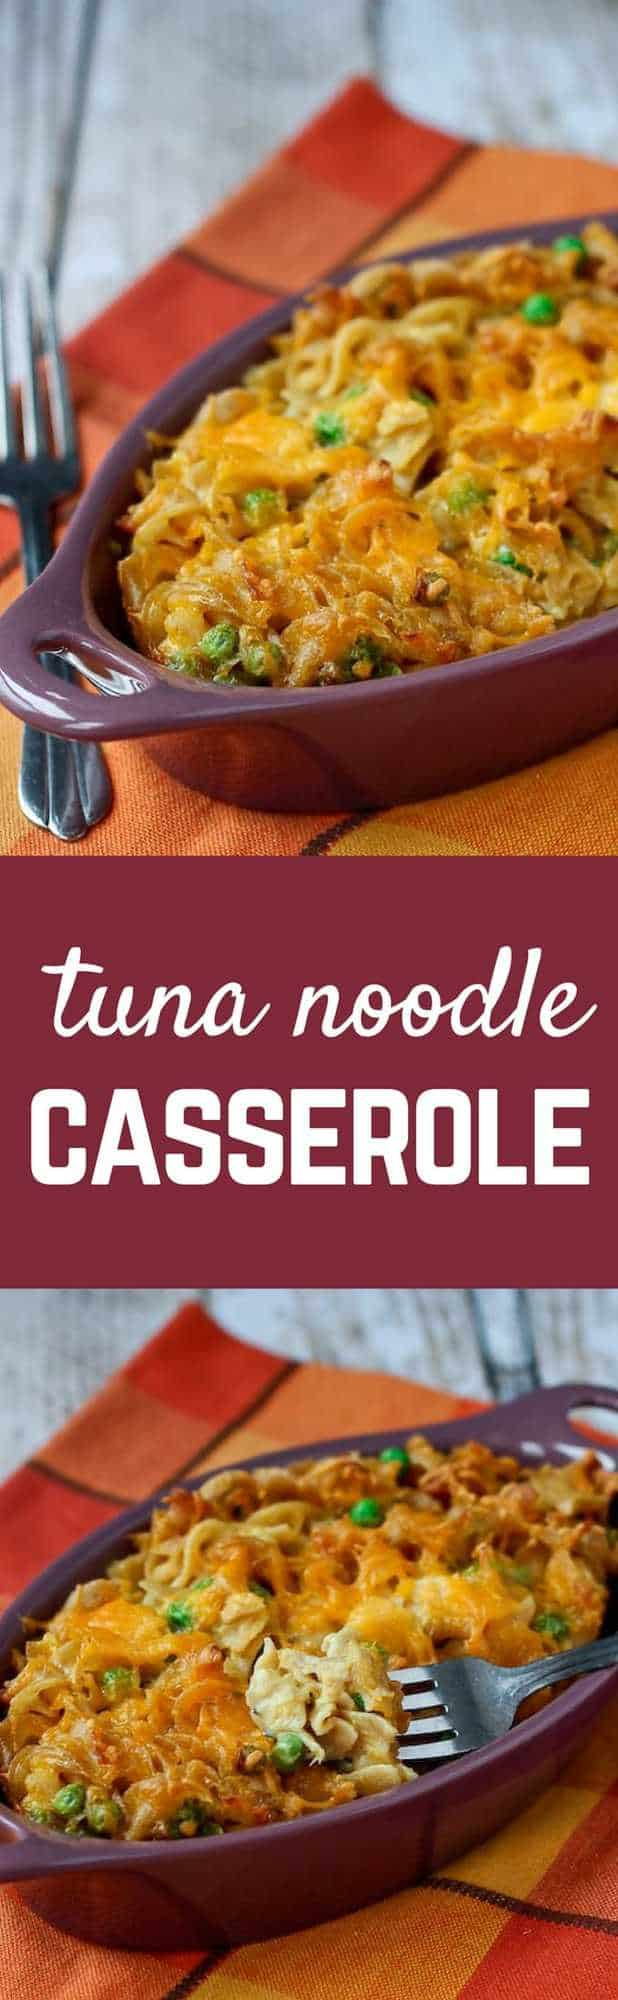 Tuna Noodle Casserole Recipe - with an unexpected crunch. This is my husband's favorite casserole! Get the recipe on RachelCooks.com!